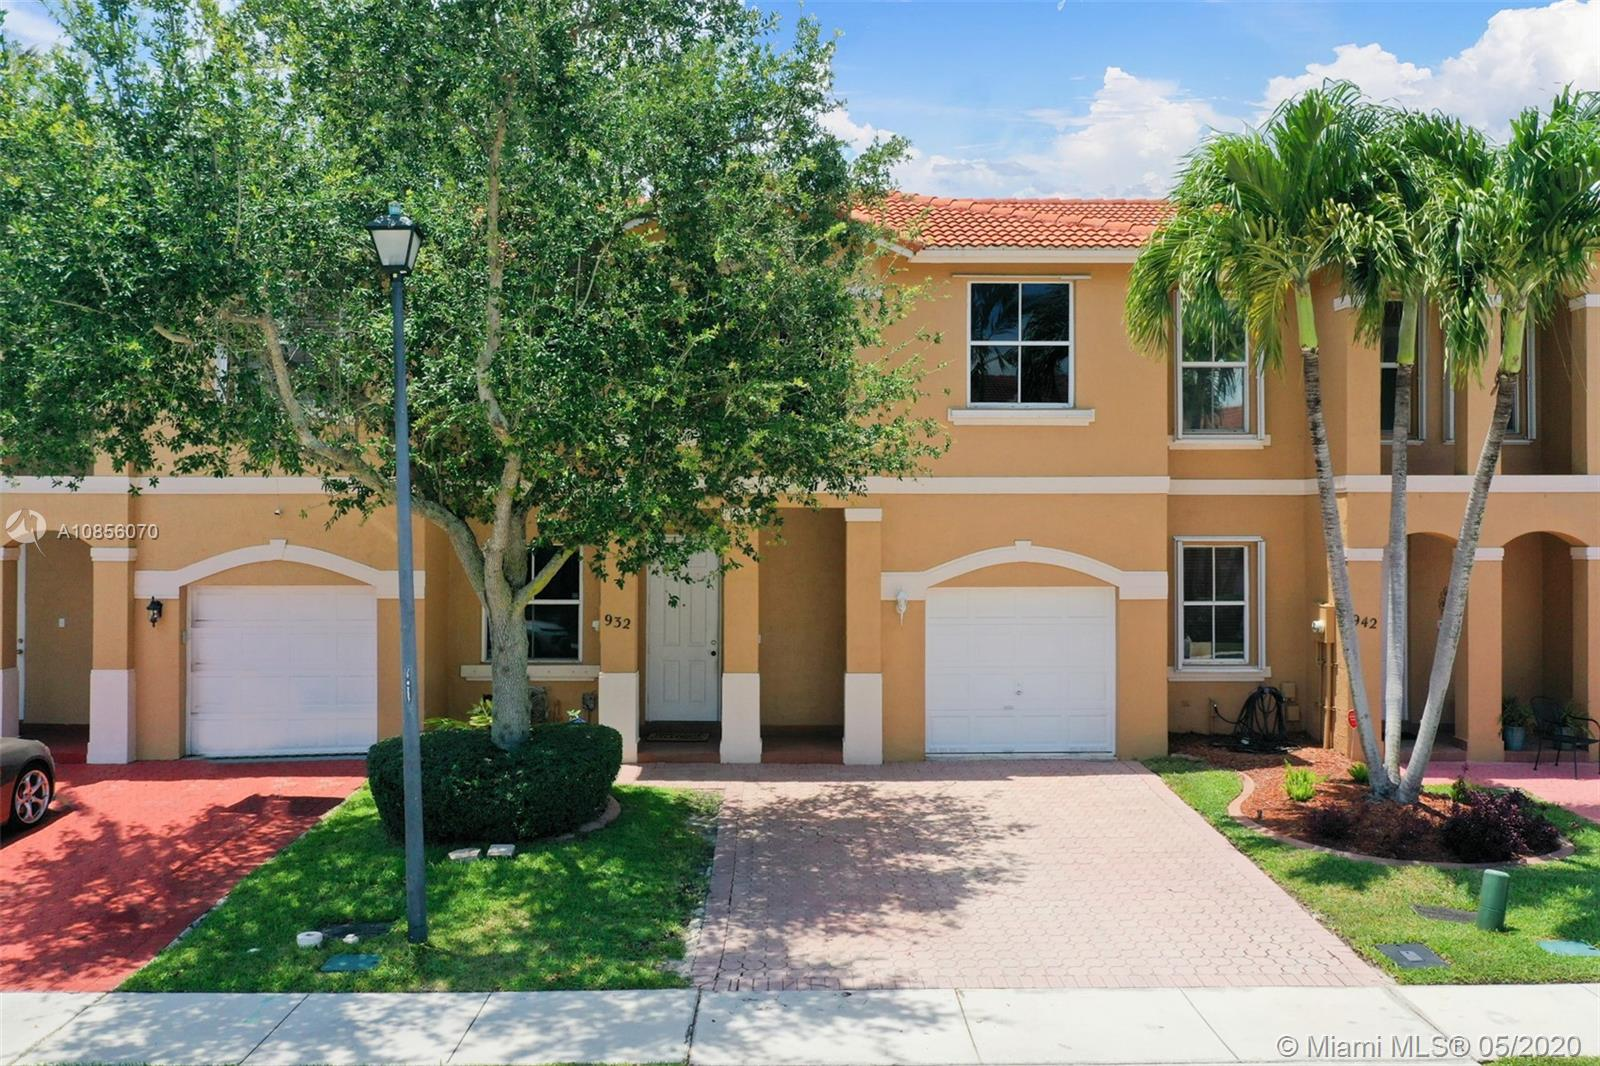 A perfect home for the first time homebuyer! Start your family in this cozy 3/2.5 in the heart of Pembroke Pines. A+ Conveniently located townhouse in the ever-popular community of Antigua. Spacious rooms, separate living room and family room, walk-in closets, and large master bathroom. Minutes away from Pembroke Gardens, Memorial Hospital, I-75, and schools. Don't regret losing the opportunity to making this your new home!